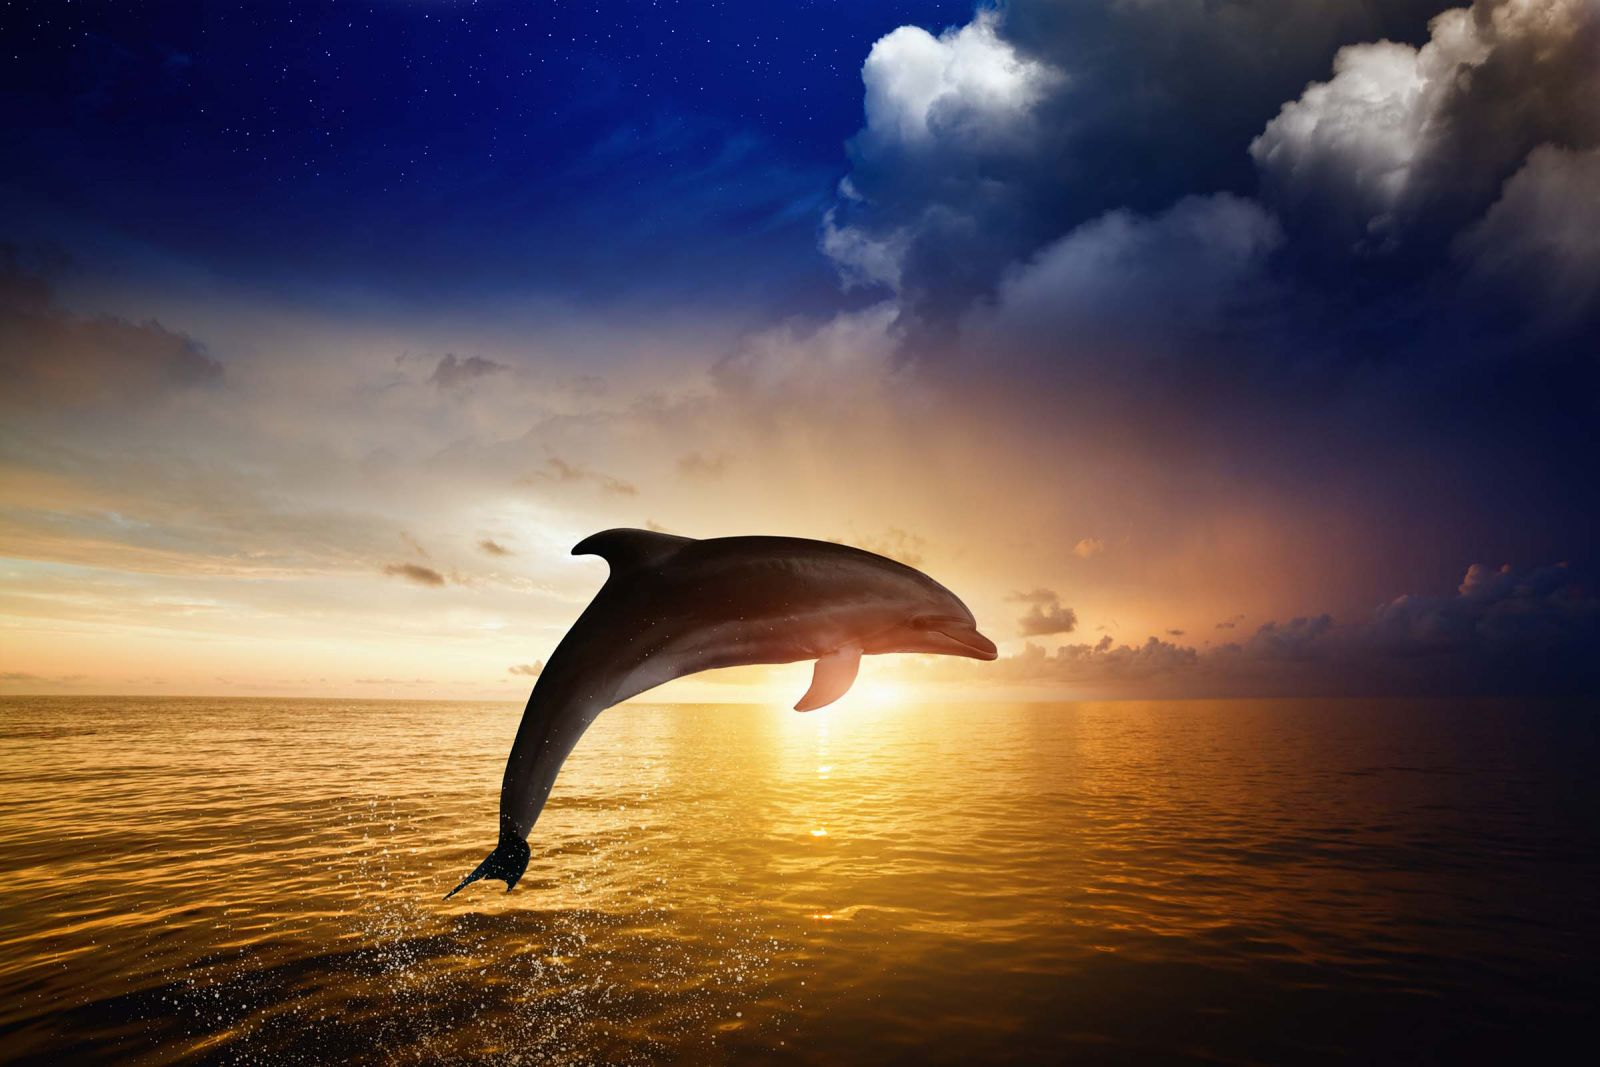 Dolphin jumping in air at sunset